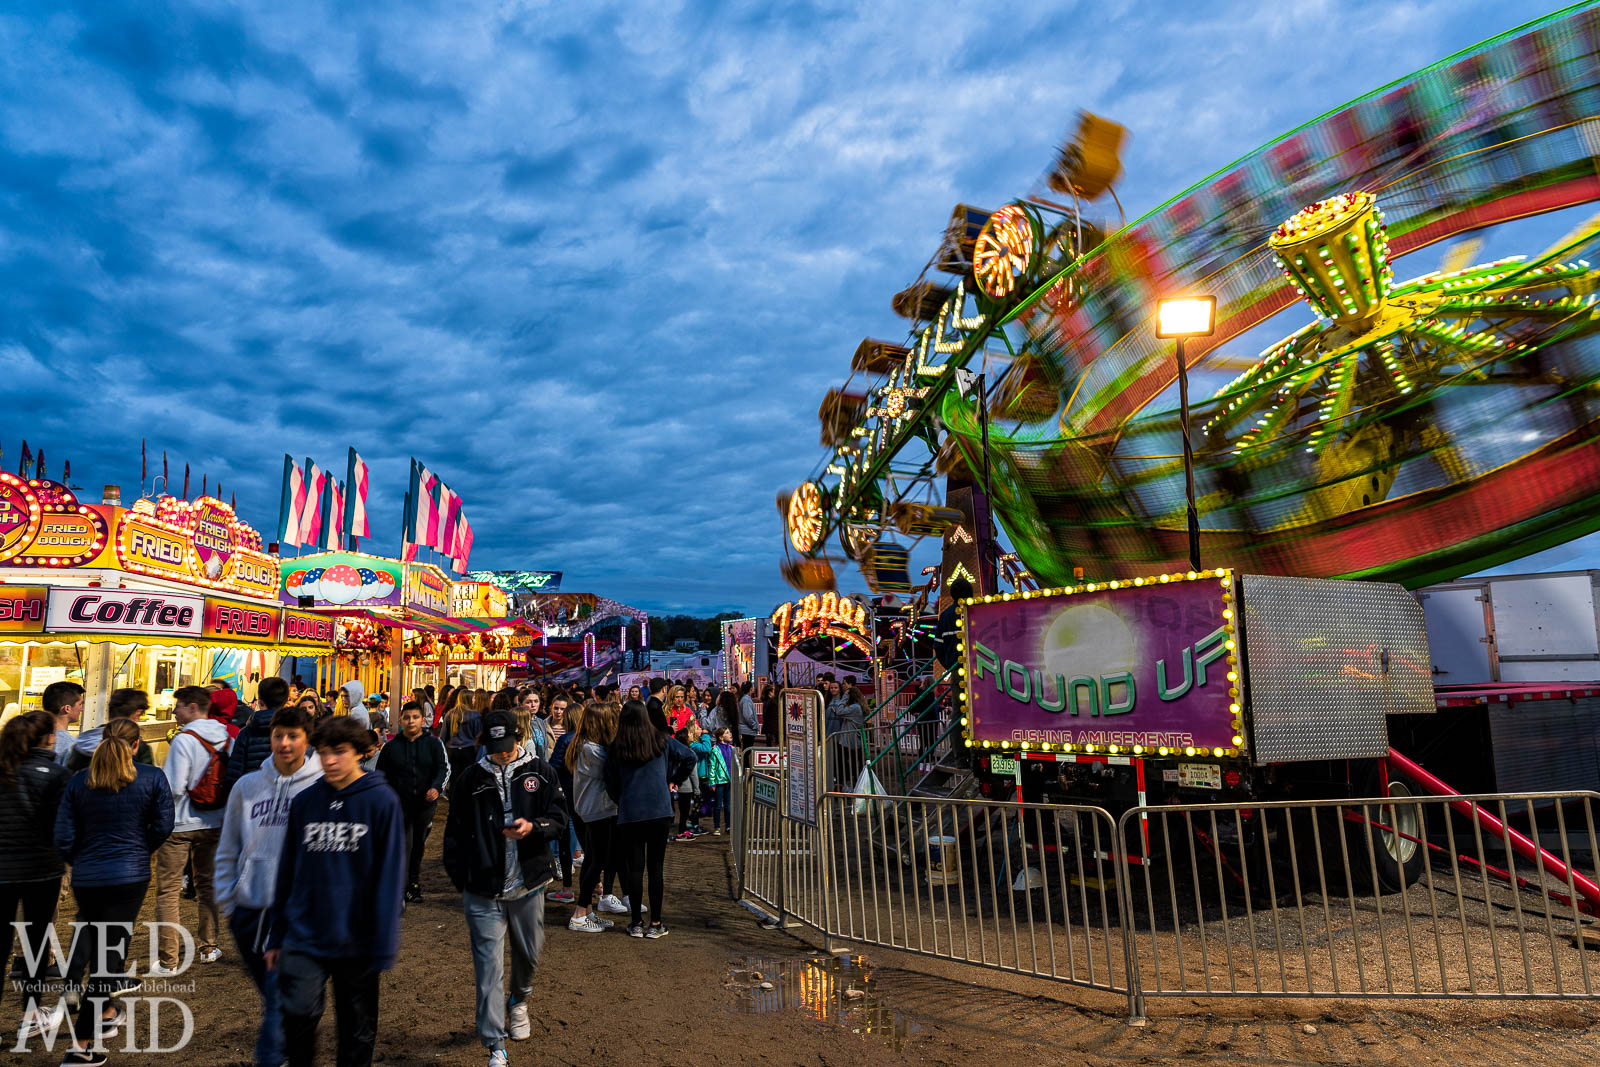 Teenagers walk the midway of the annual Marblehead High School carnival at Deveruex Beach with rides in full swing and food items calling out